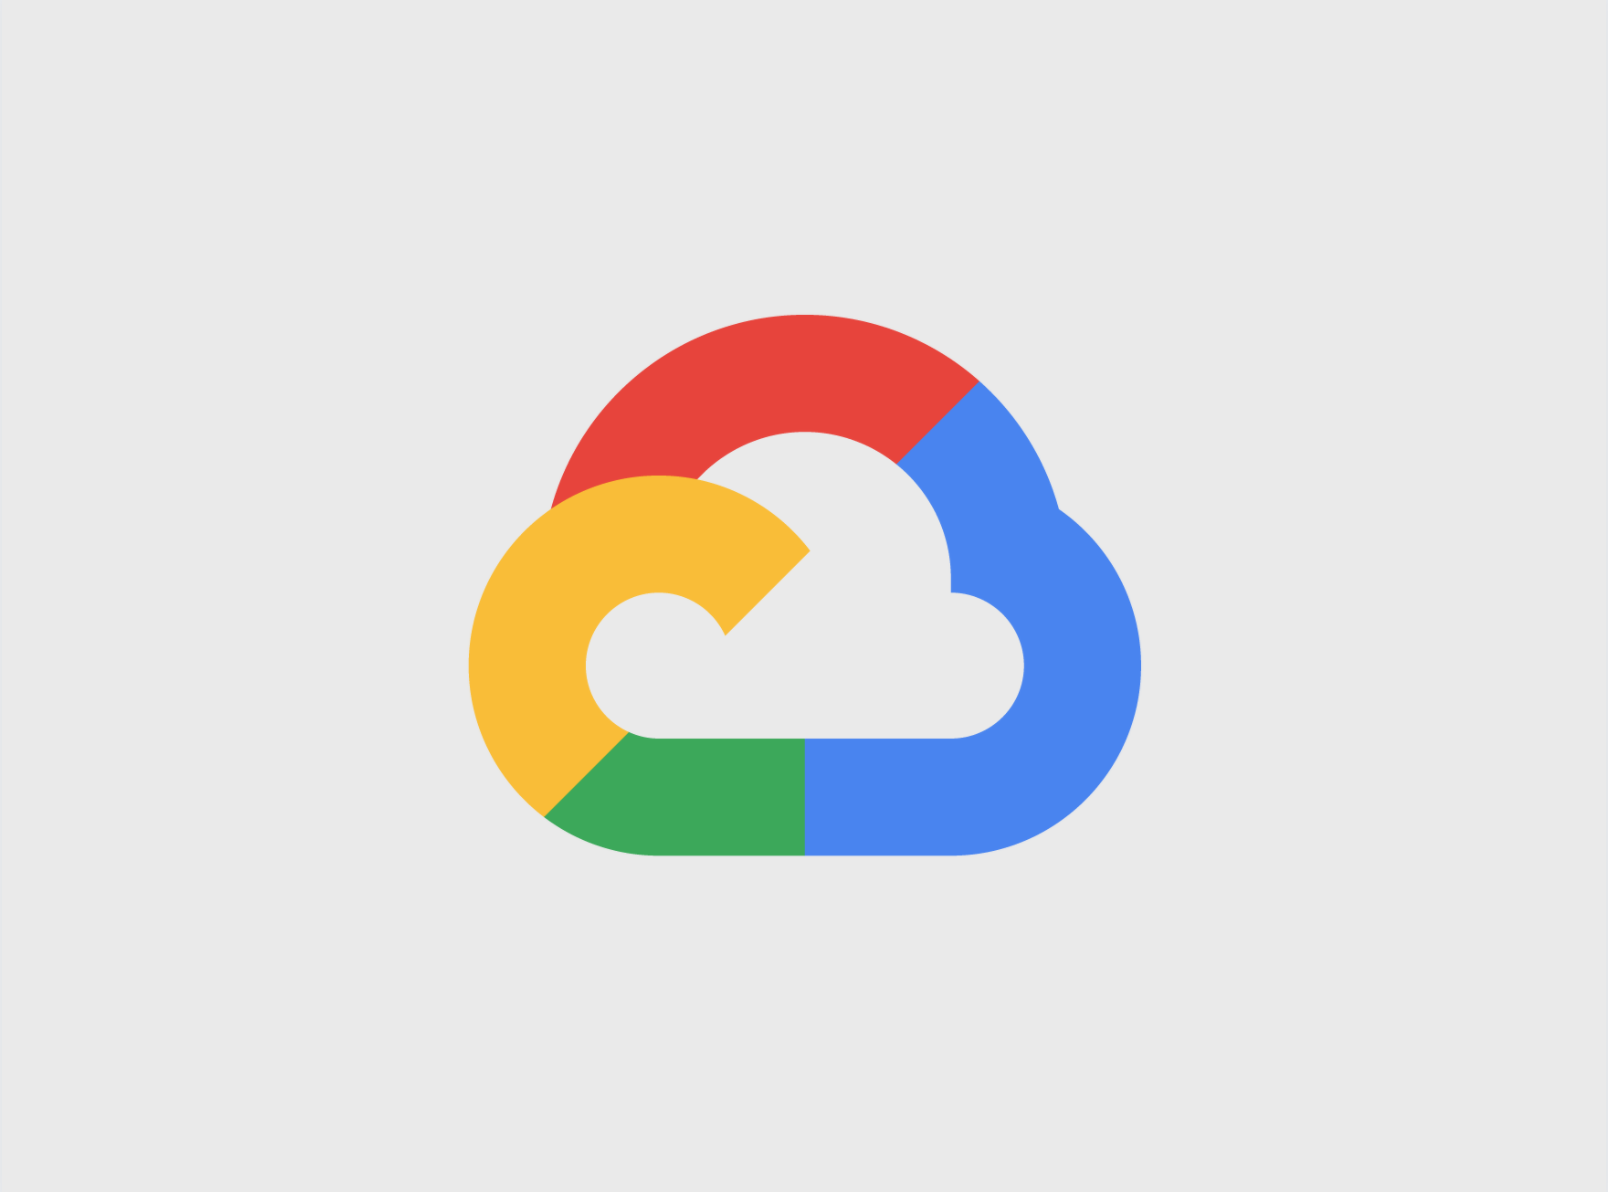 Getting Started on GCP Marketplace